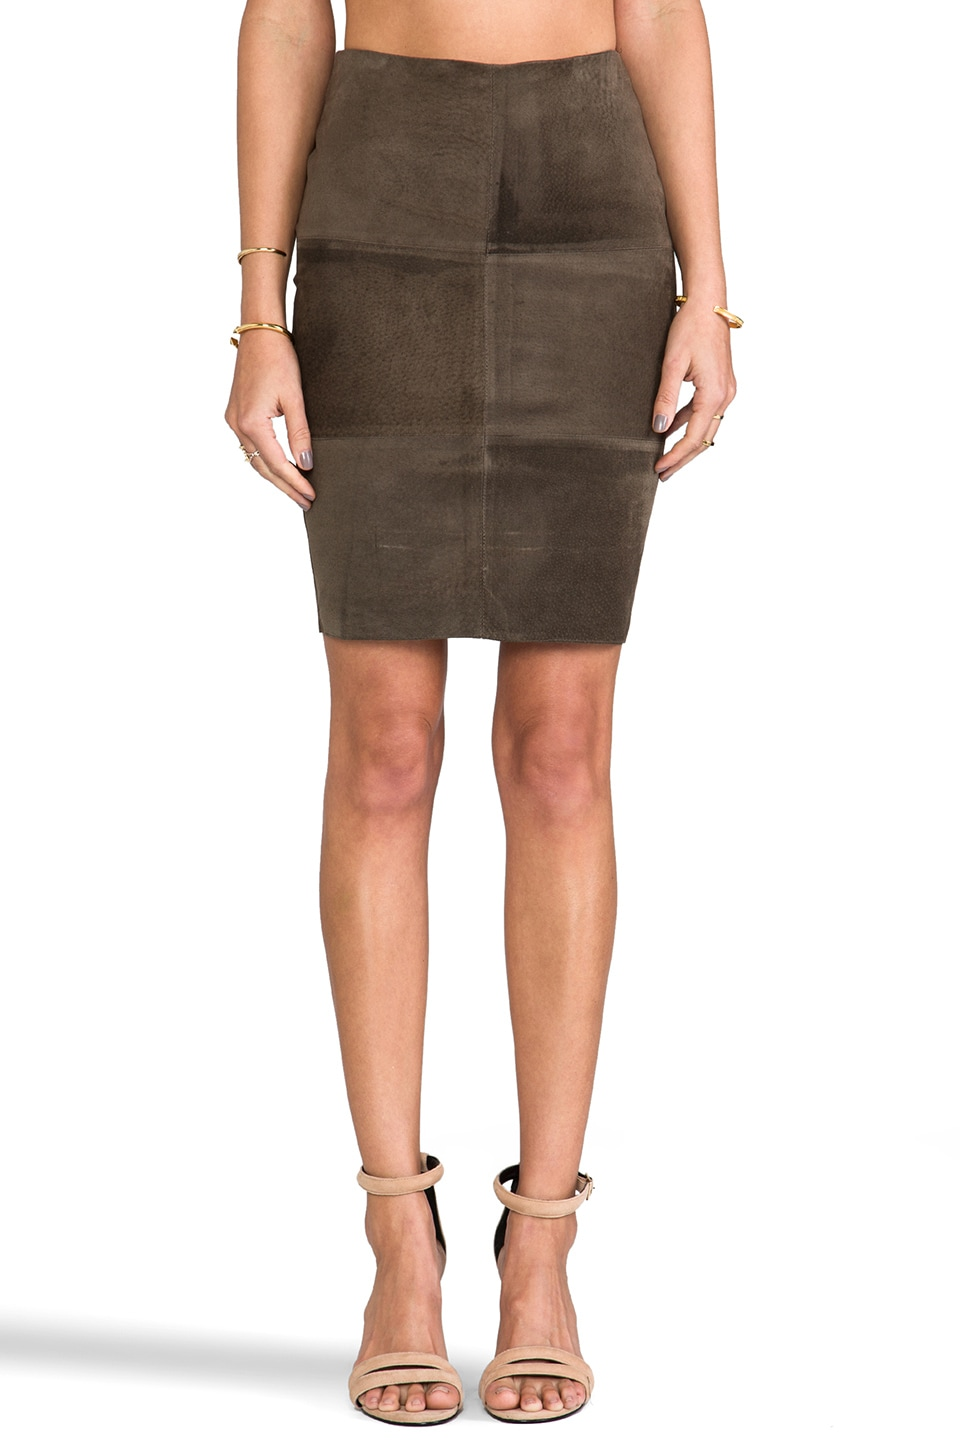 Bailey 44 No Snoring Skirt in Army